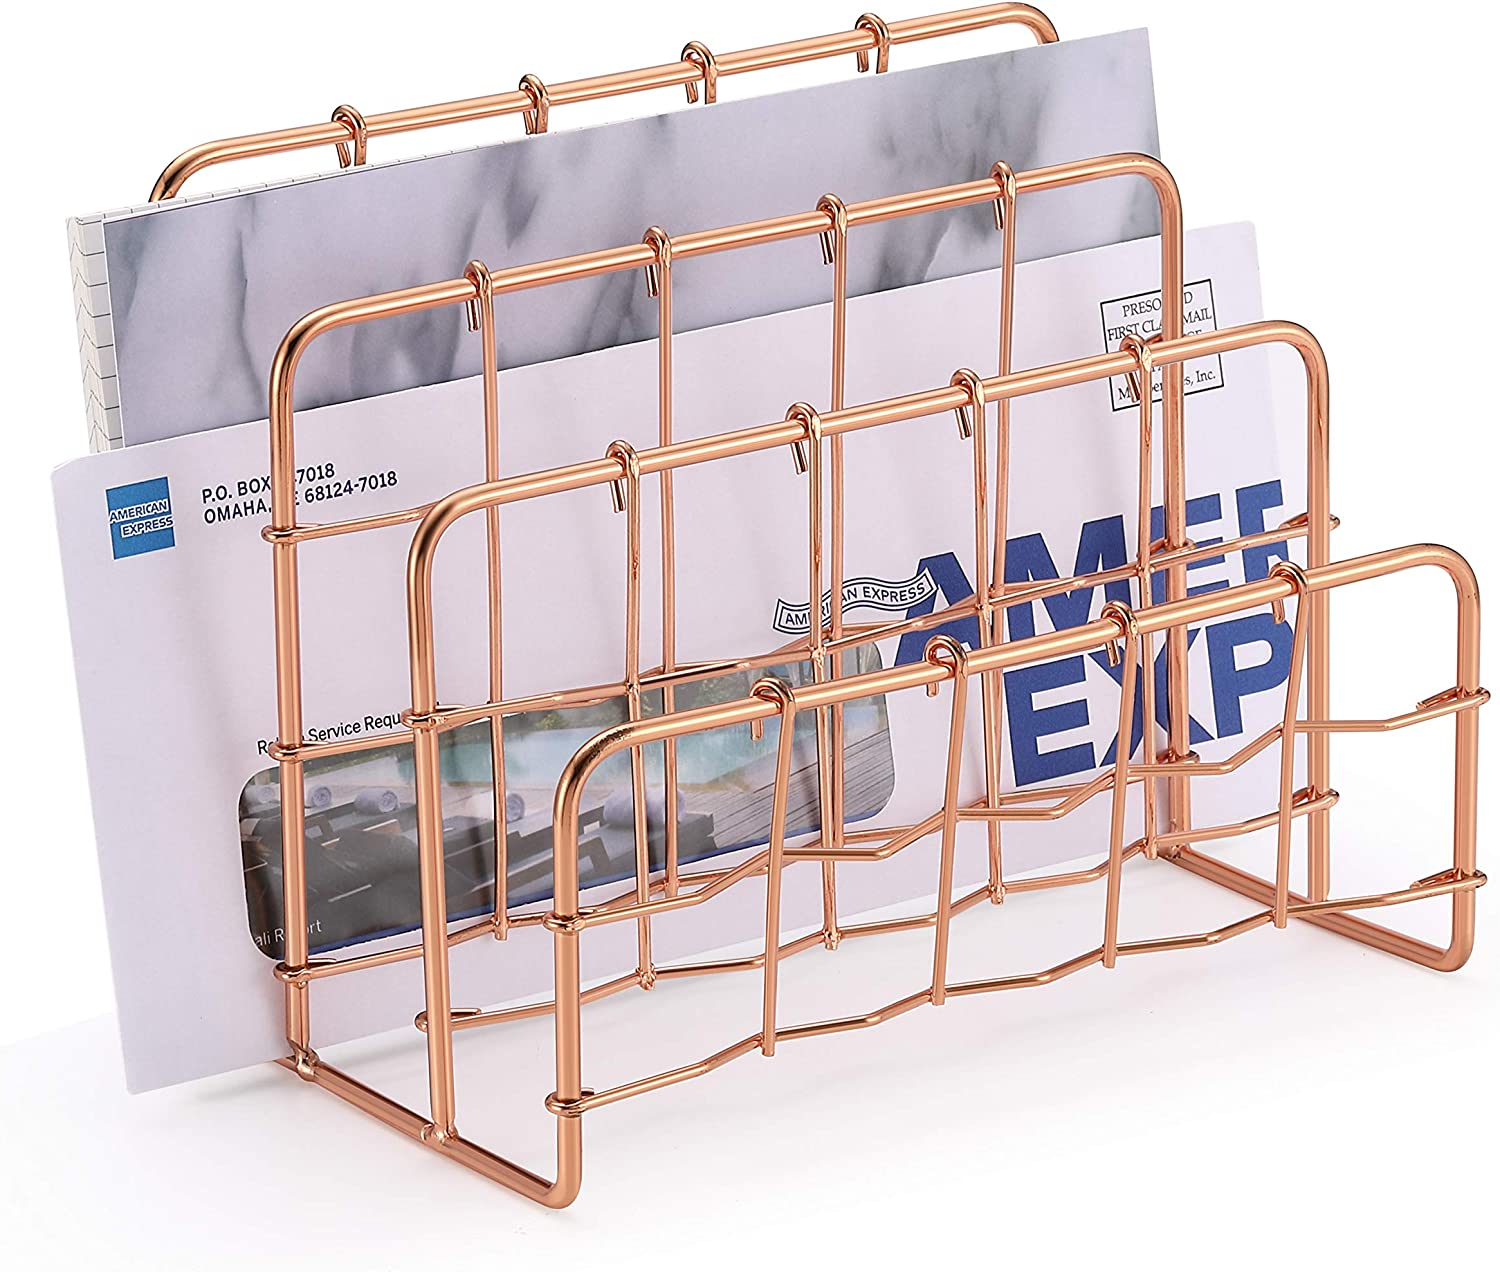 CAXXA 3 Slot Desktop Metal Mail Organizer, Books Files Brochures Postcards Sorter, Rose Gold